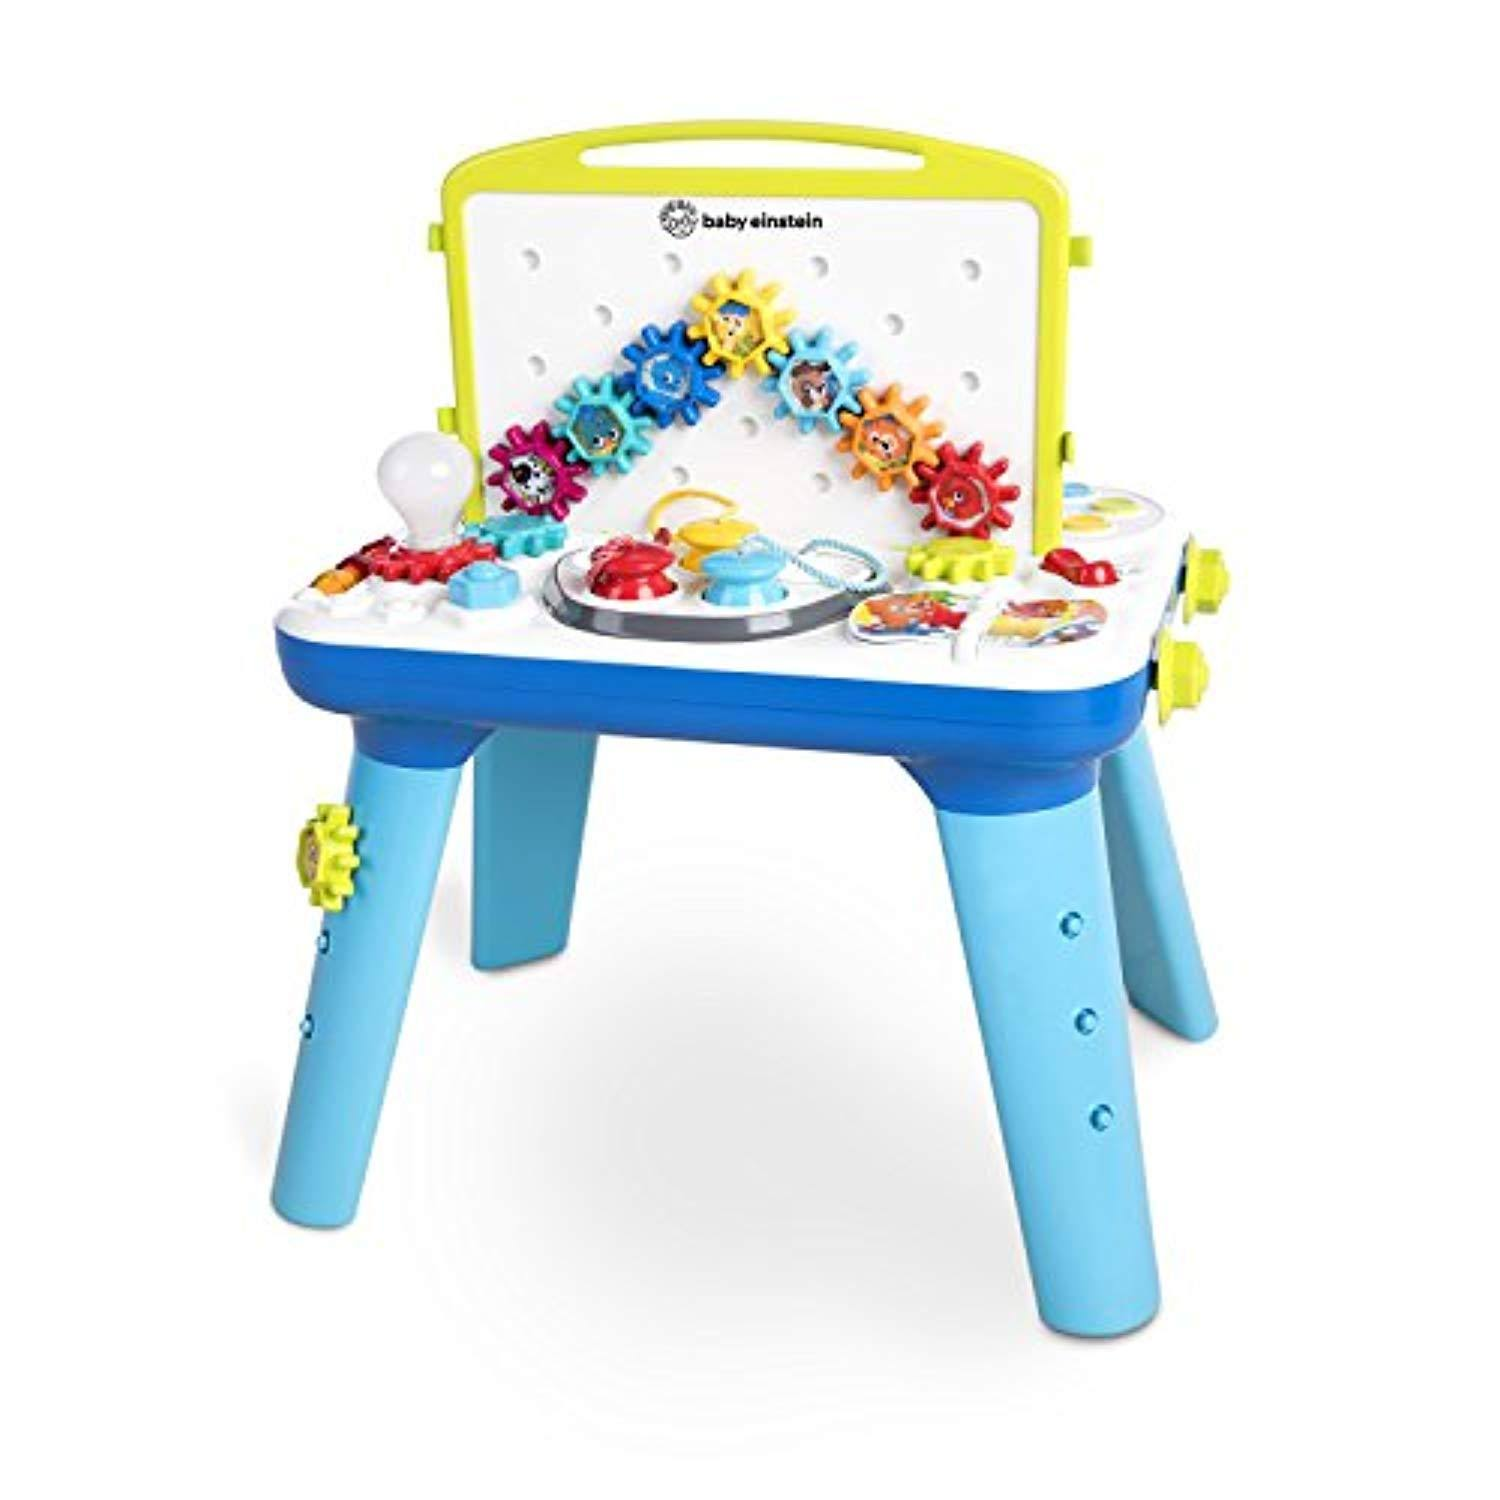 Baby Einstein Kids' Curiosity Table Activity and Learning Toy Station